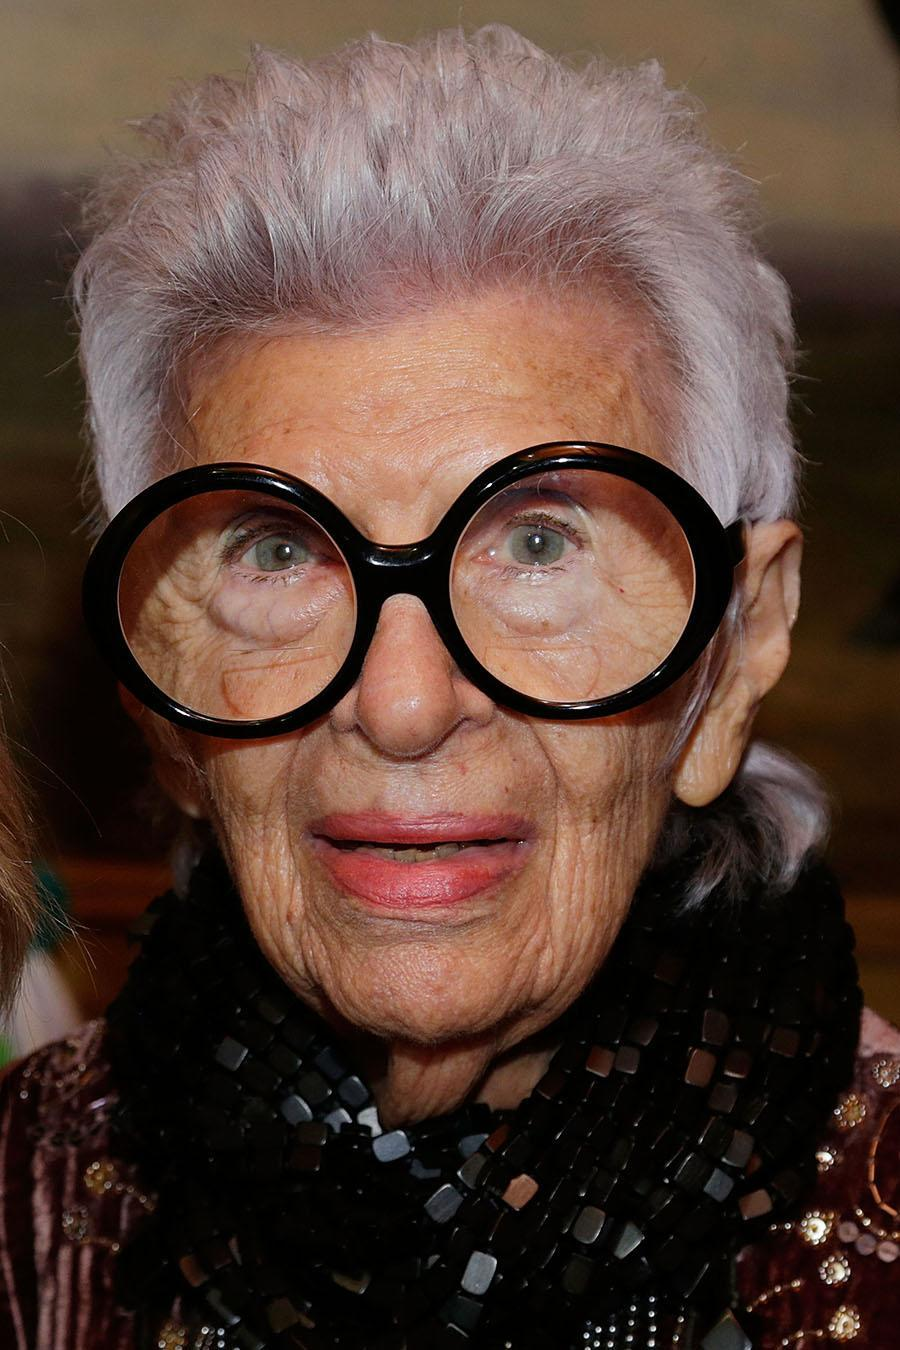 <p>Iris Apfel is proof that the pixie looks good no matter your age. (Photo by Lars Niki/Getty Images for HSN) </p>